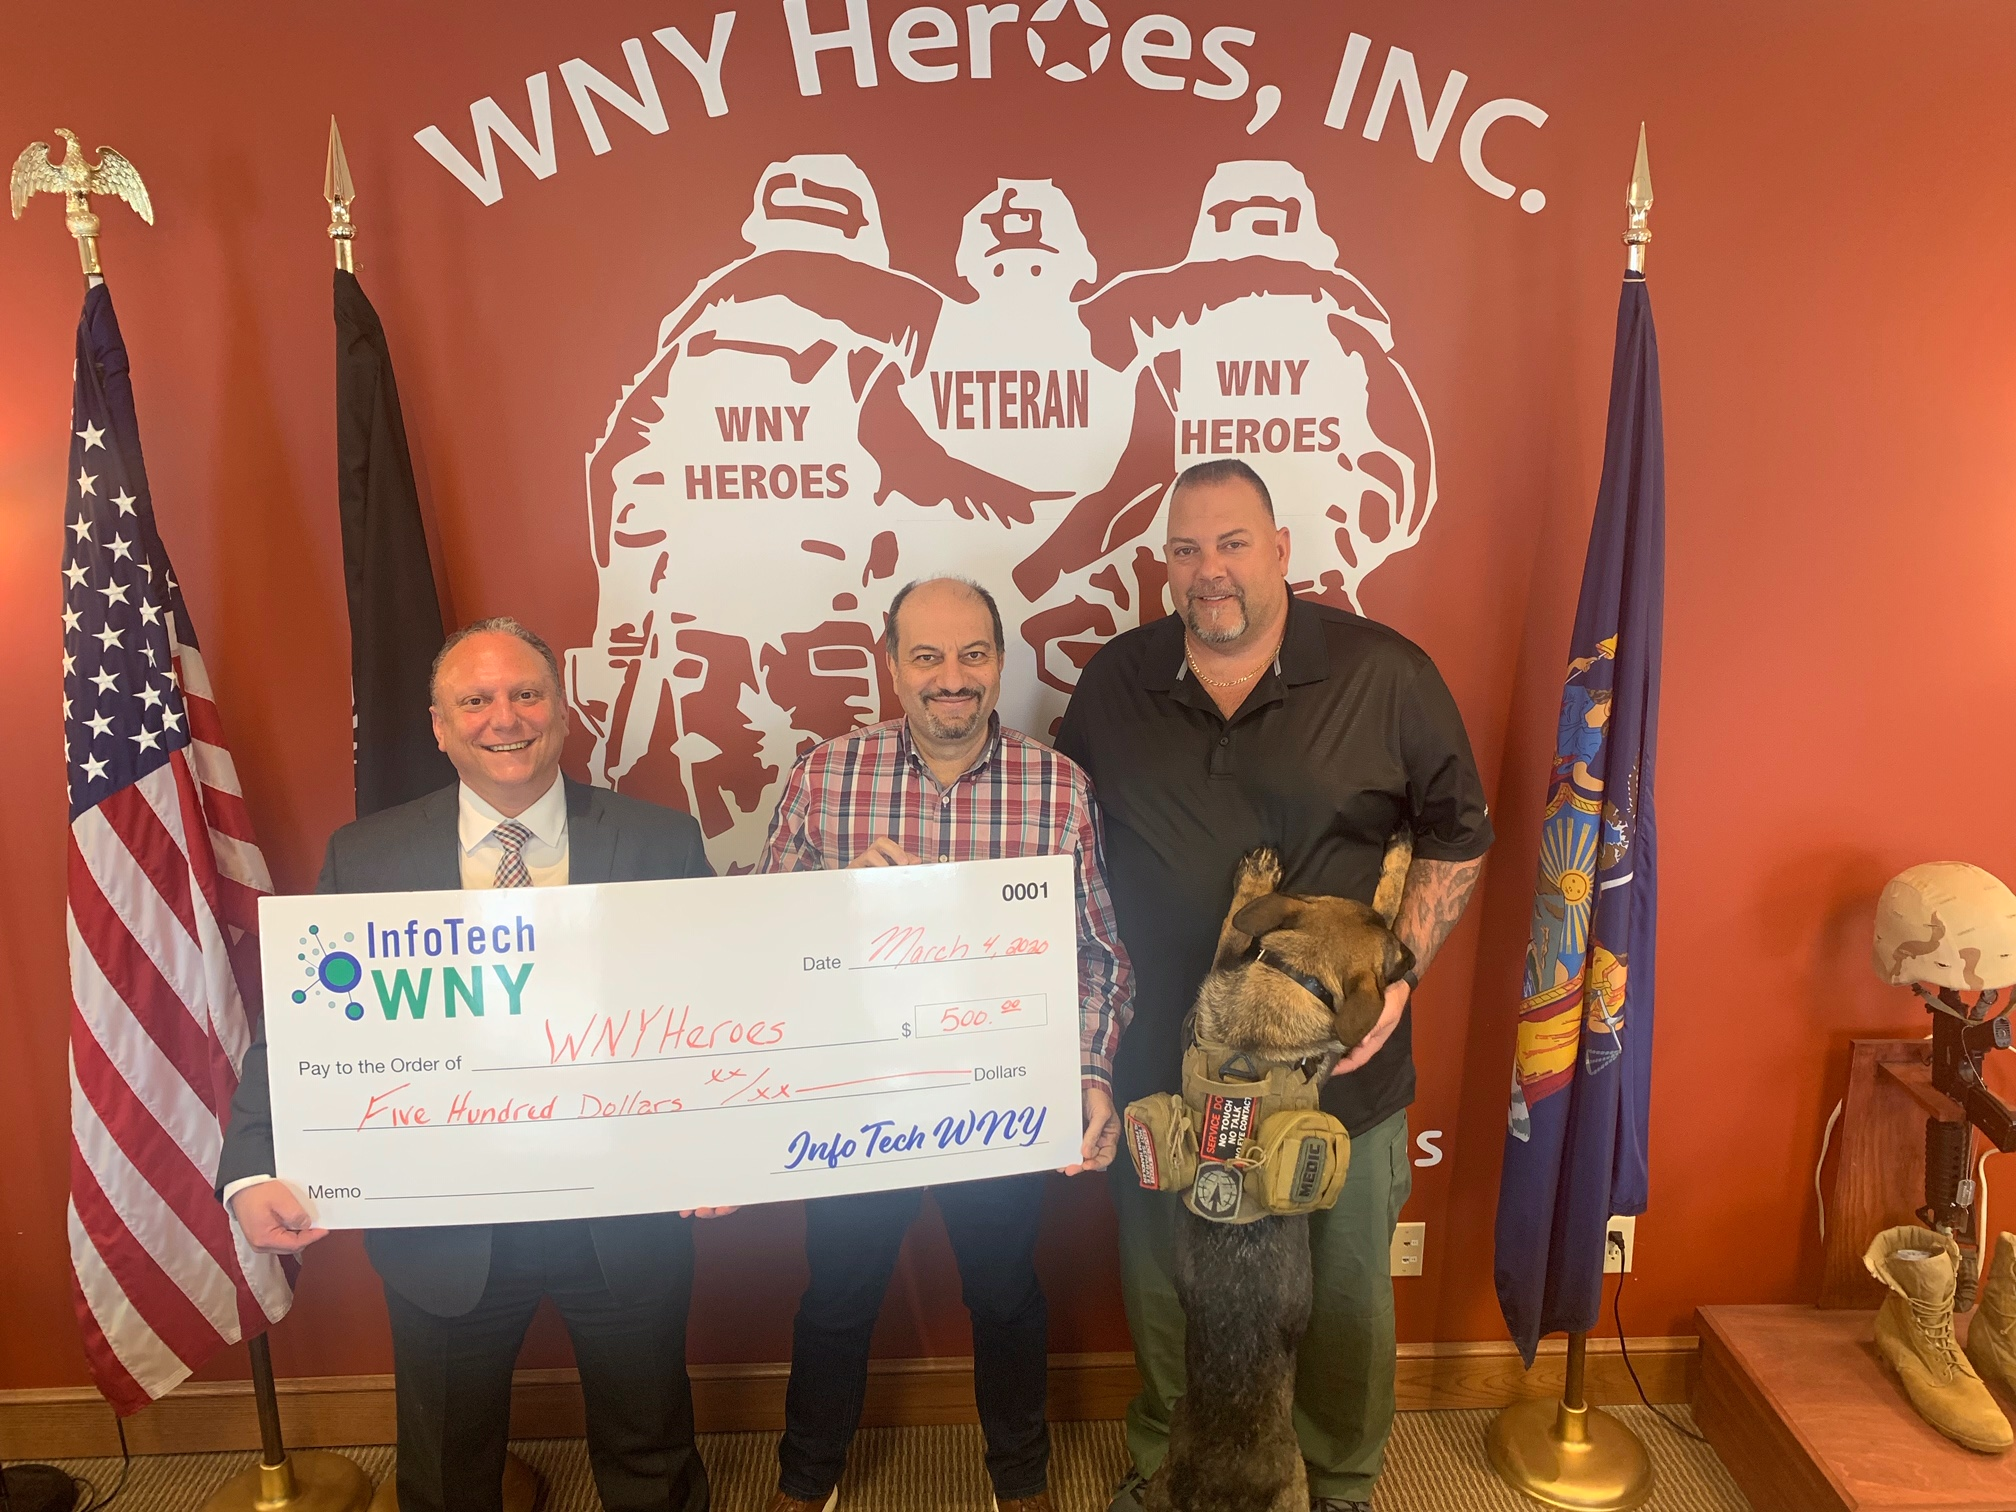 InfoTech WNY supports WNY Heroes Image